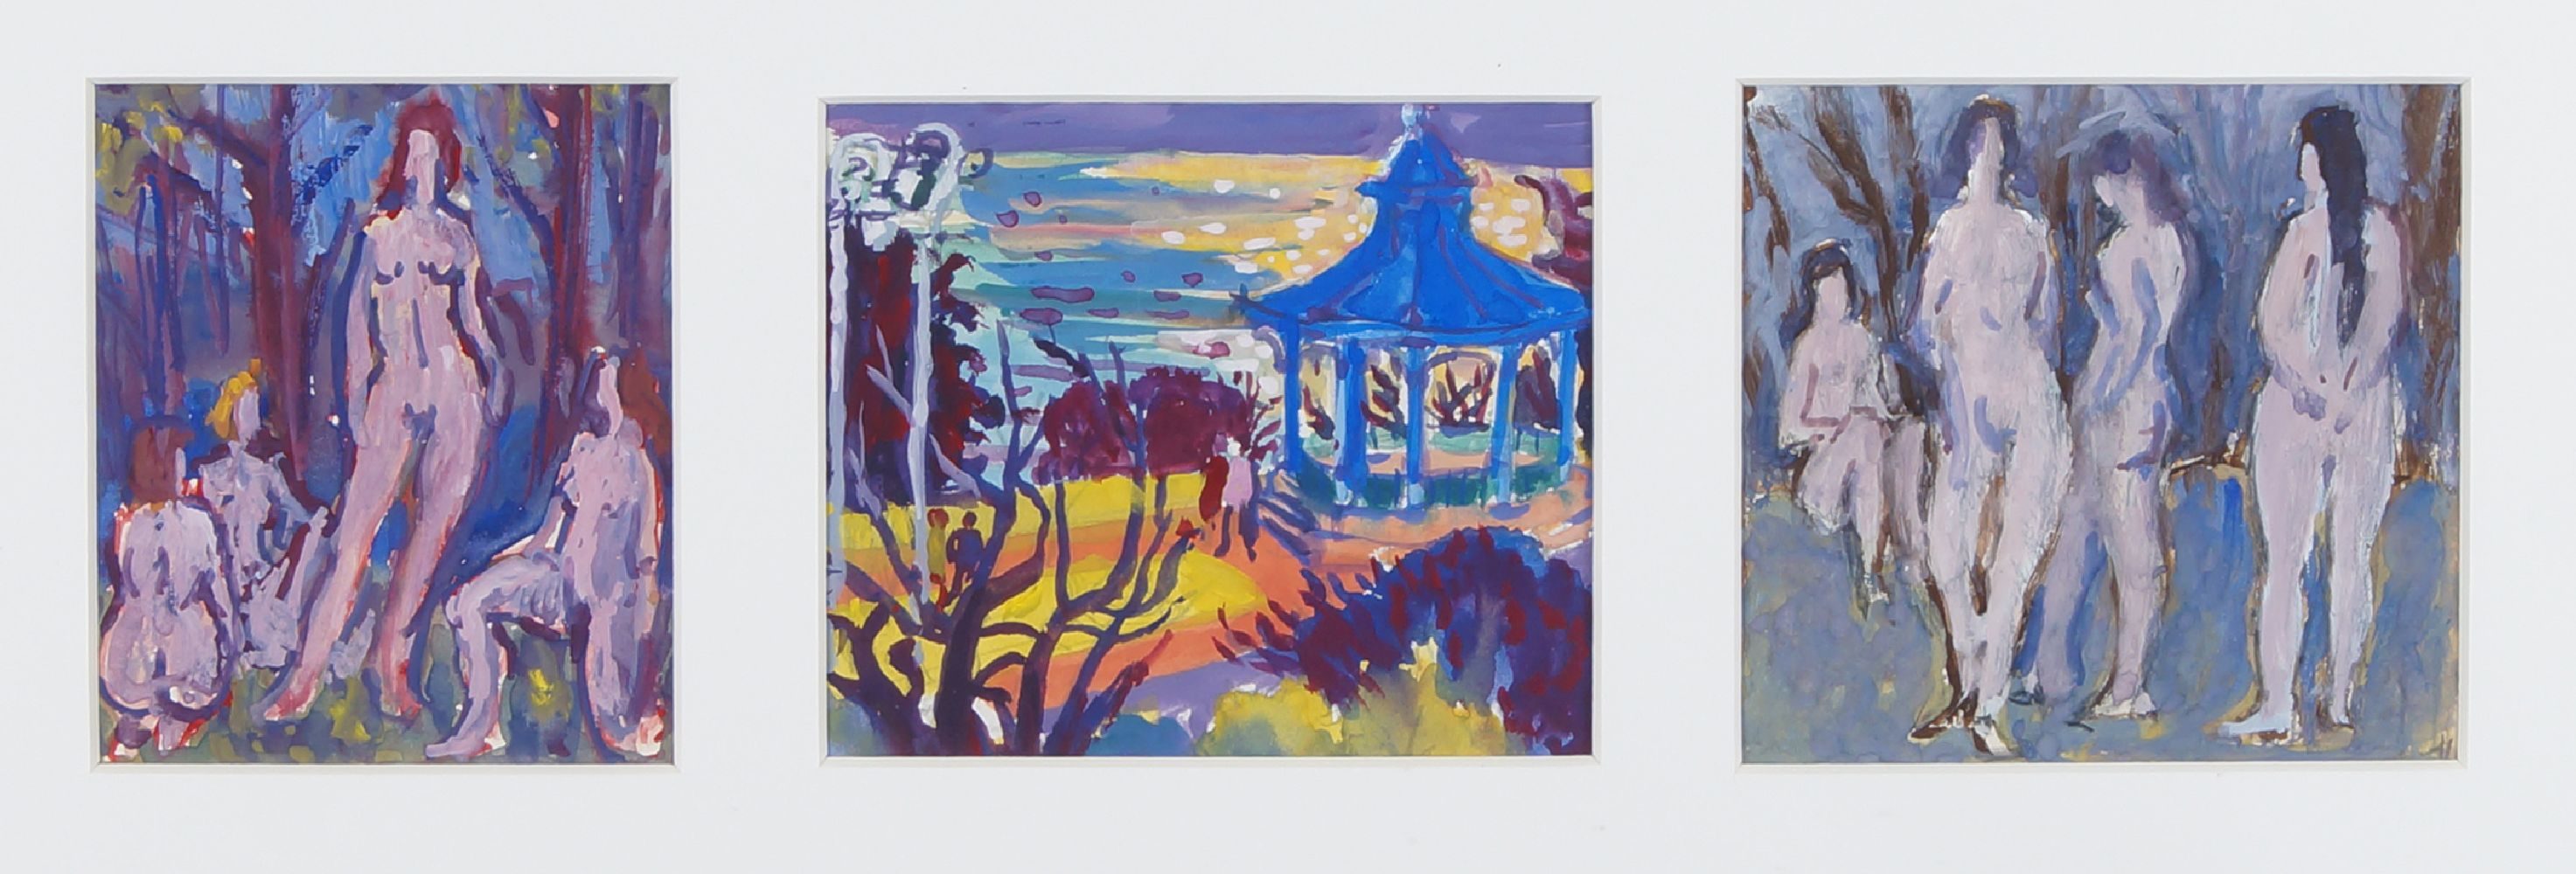 Fyffe Christie, British 1918-1979- The Bandstand Greenwich and two figurative studies; gouache, - Image 2 of 2